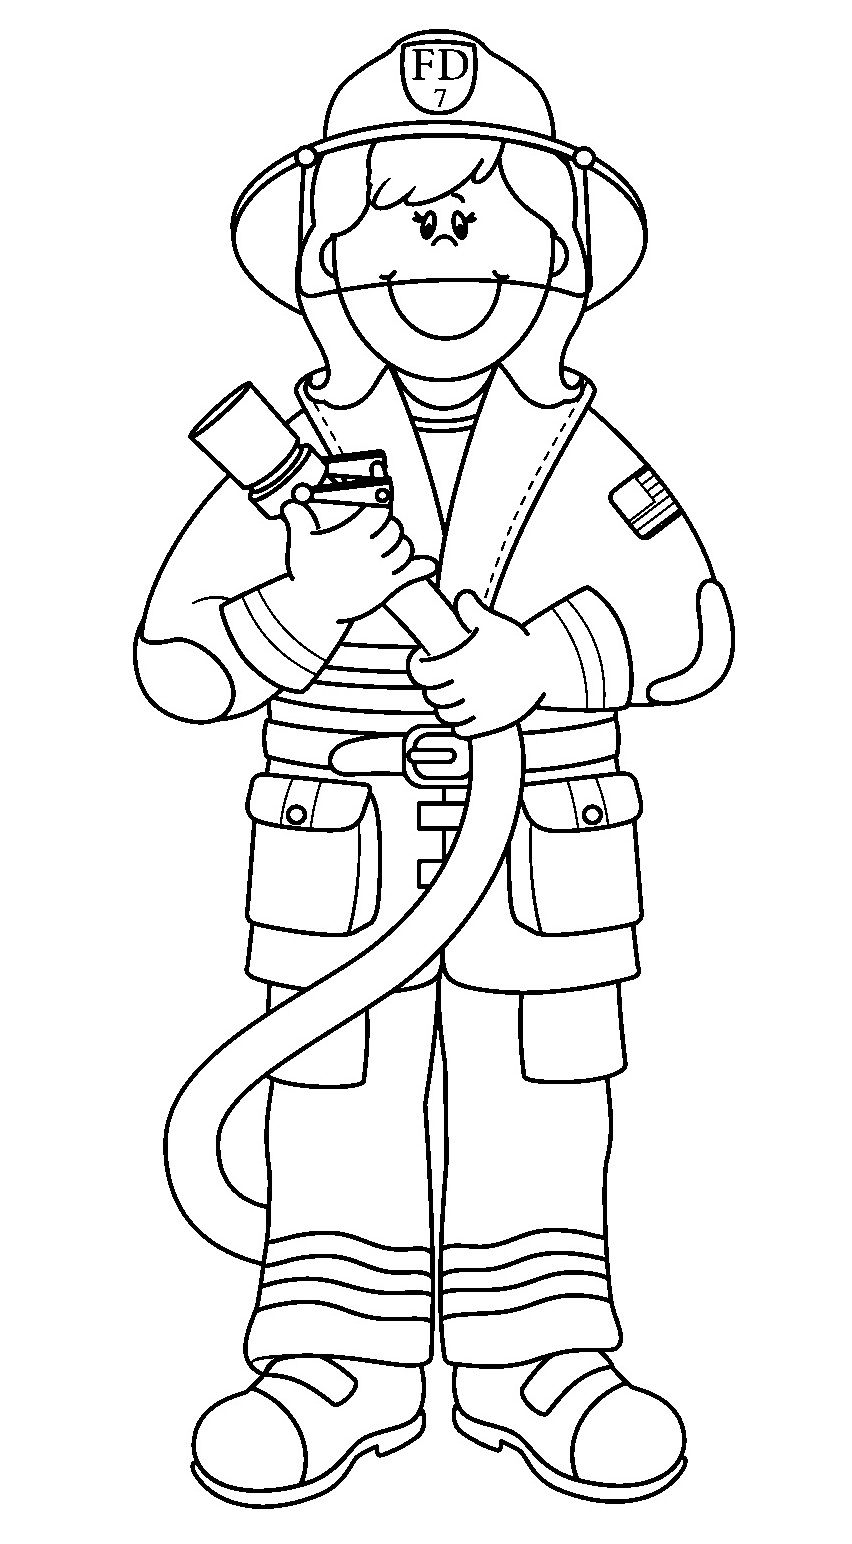 fireman coloring pages Printable Fireman Coloring Pages | Printable Firefighter Coloring  fireman coloring pages